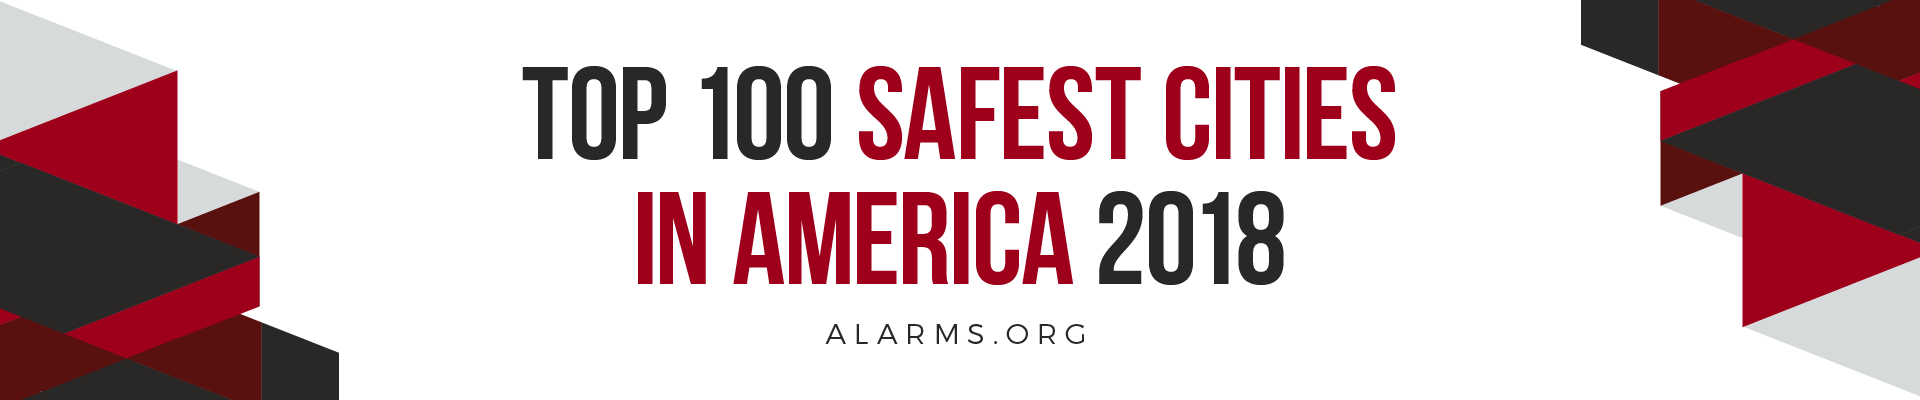 top 100 safe cities 2018